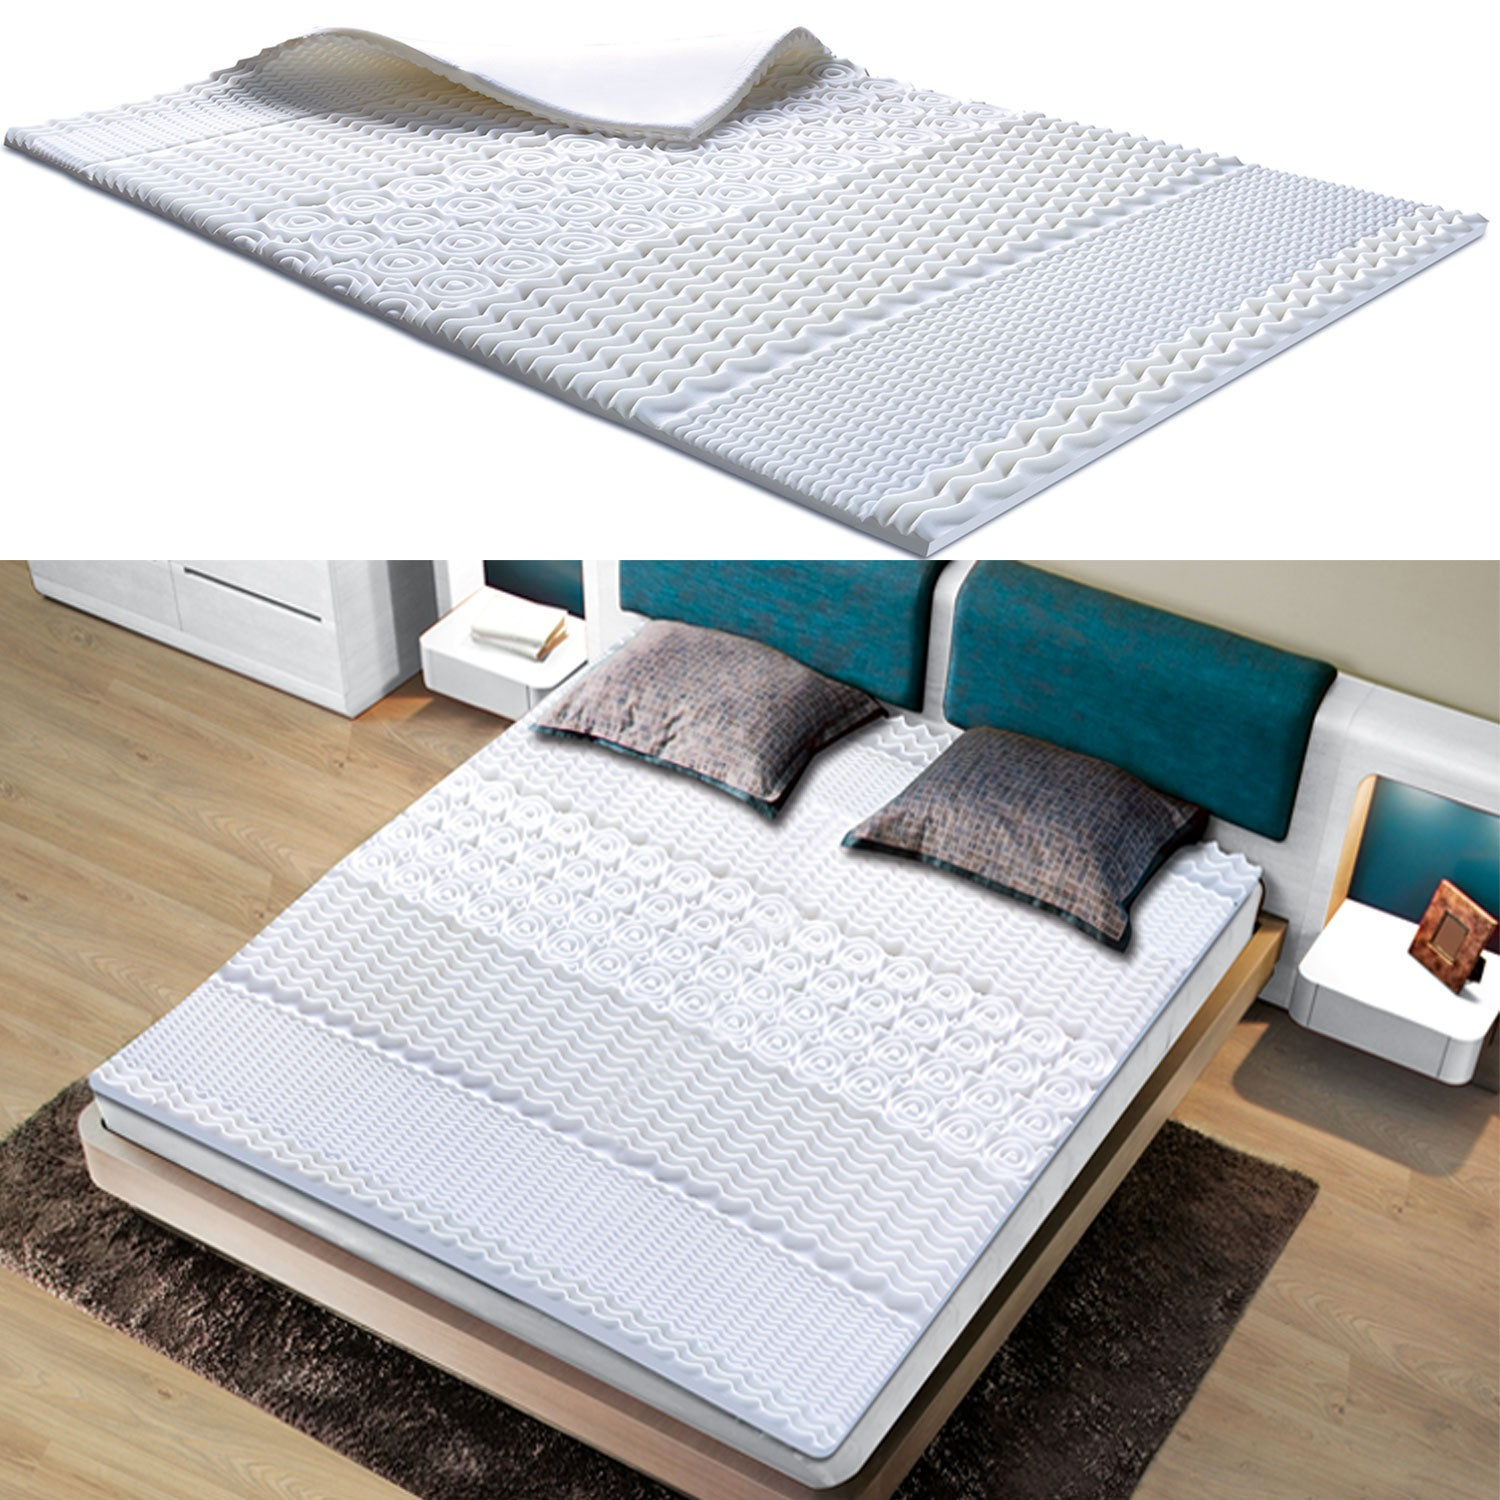 surmatelas 160 your name with surmatelas 160 trendy. Black Bedroom Furniture Sets. Home Design Ideas